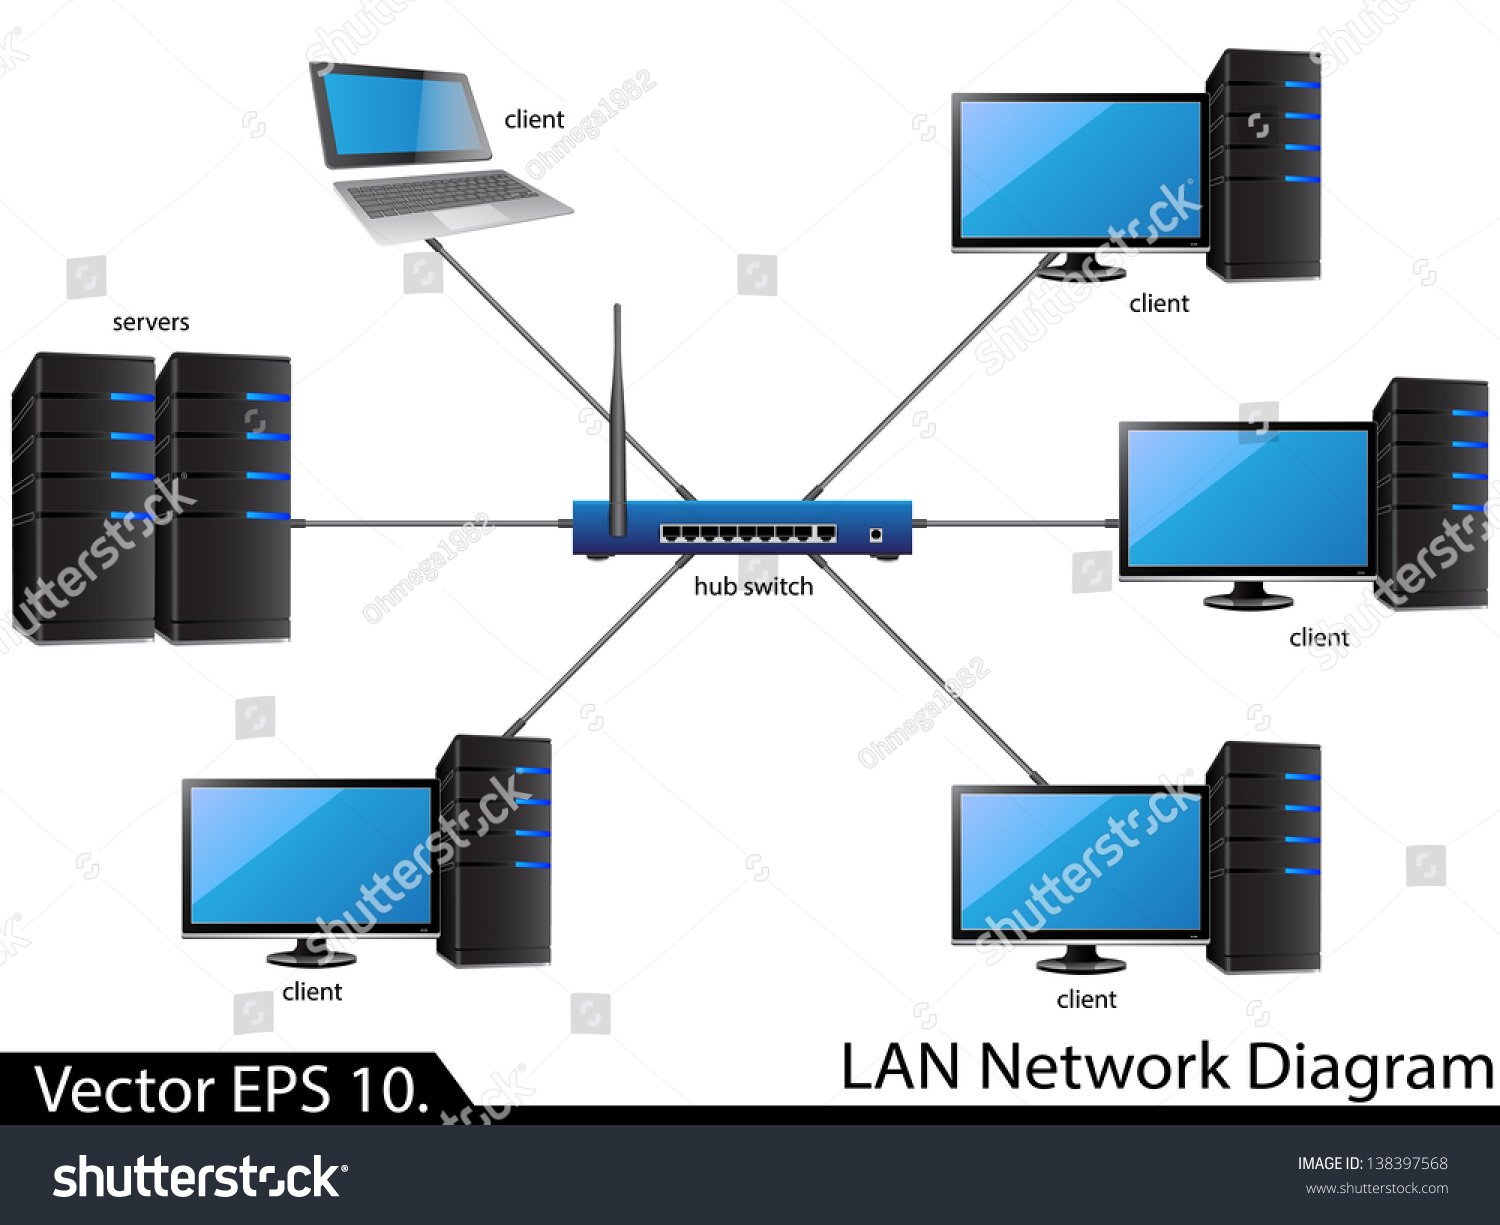 Lan Network Diagram Vector Illustrator Eps Stock Vector 138397568 ...